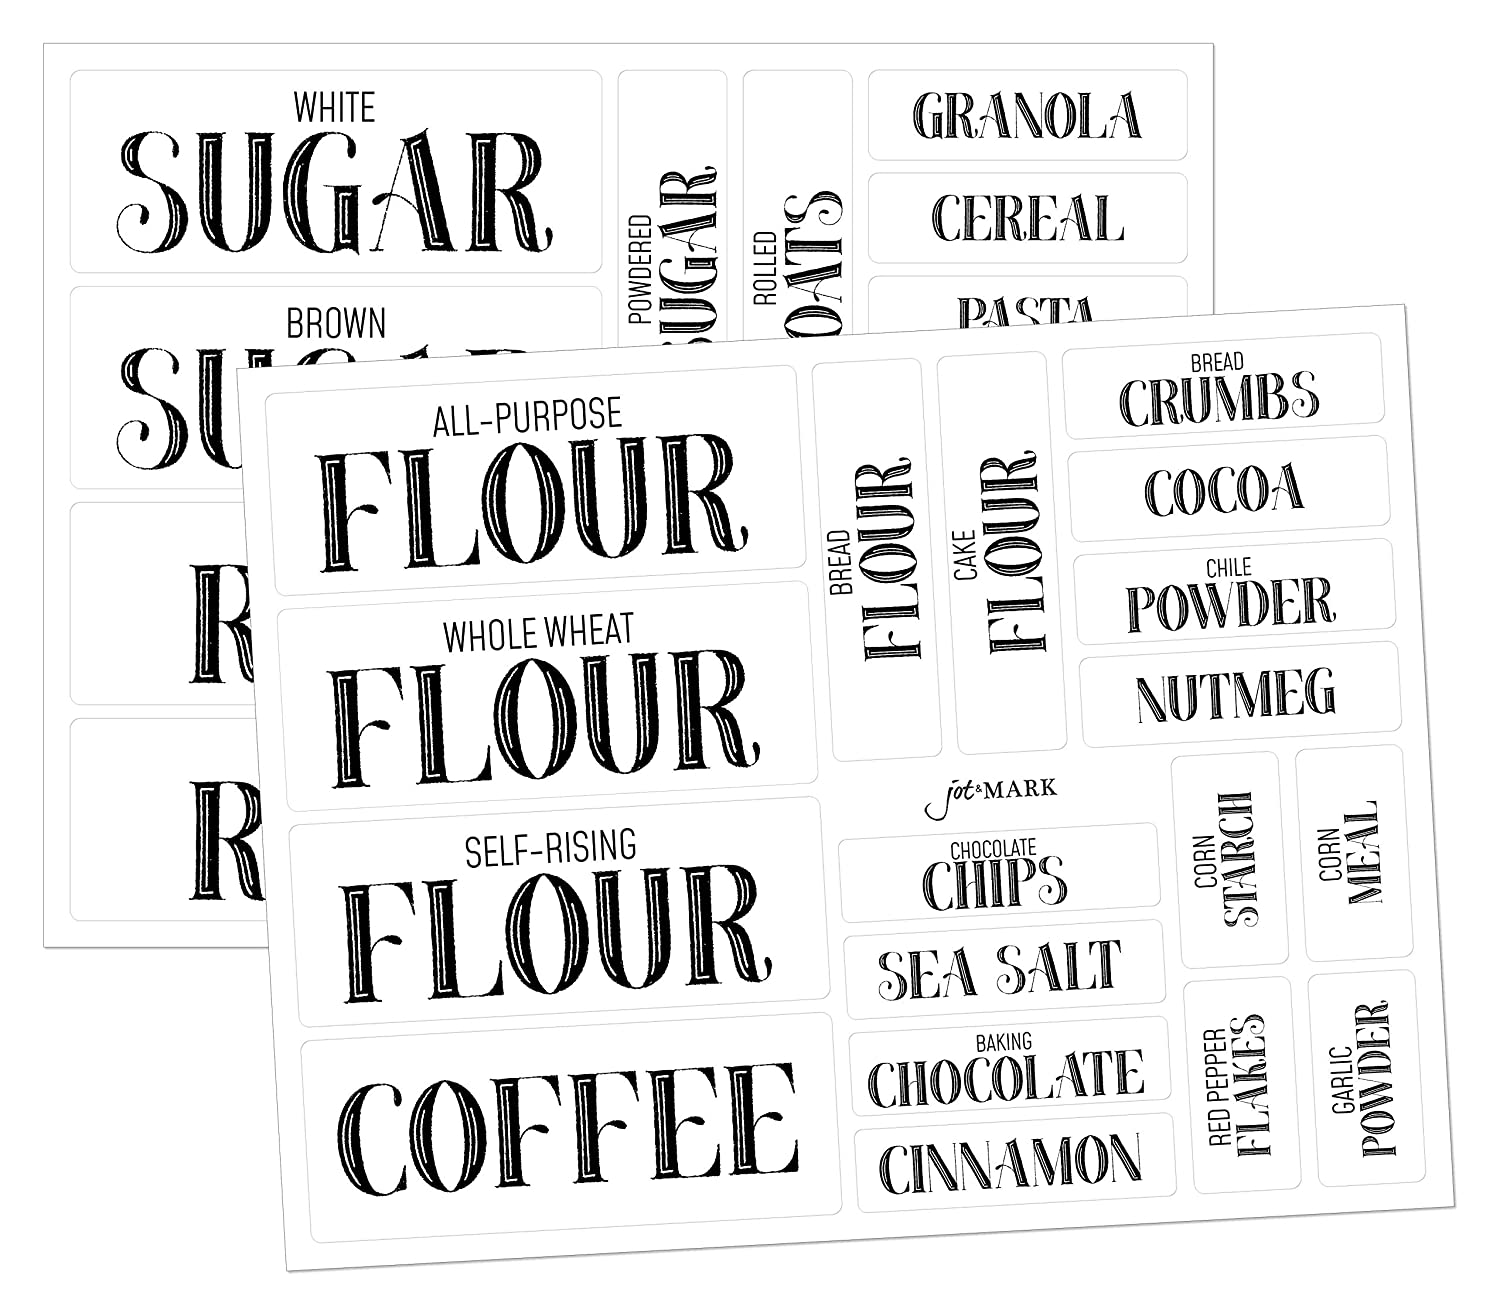 Amazon com pantry labels for kitchen organization and storage clear stickers set of 36 by jot mark kitchen dining